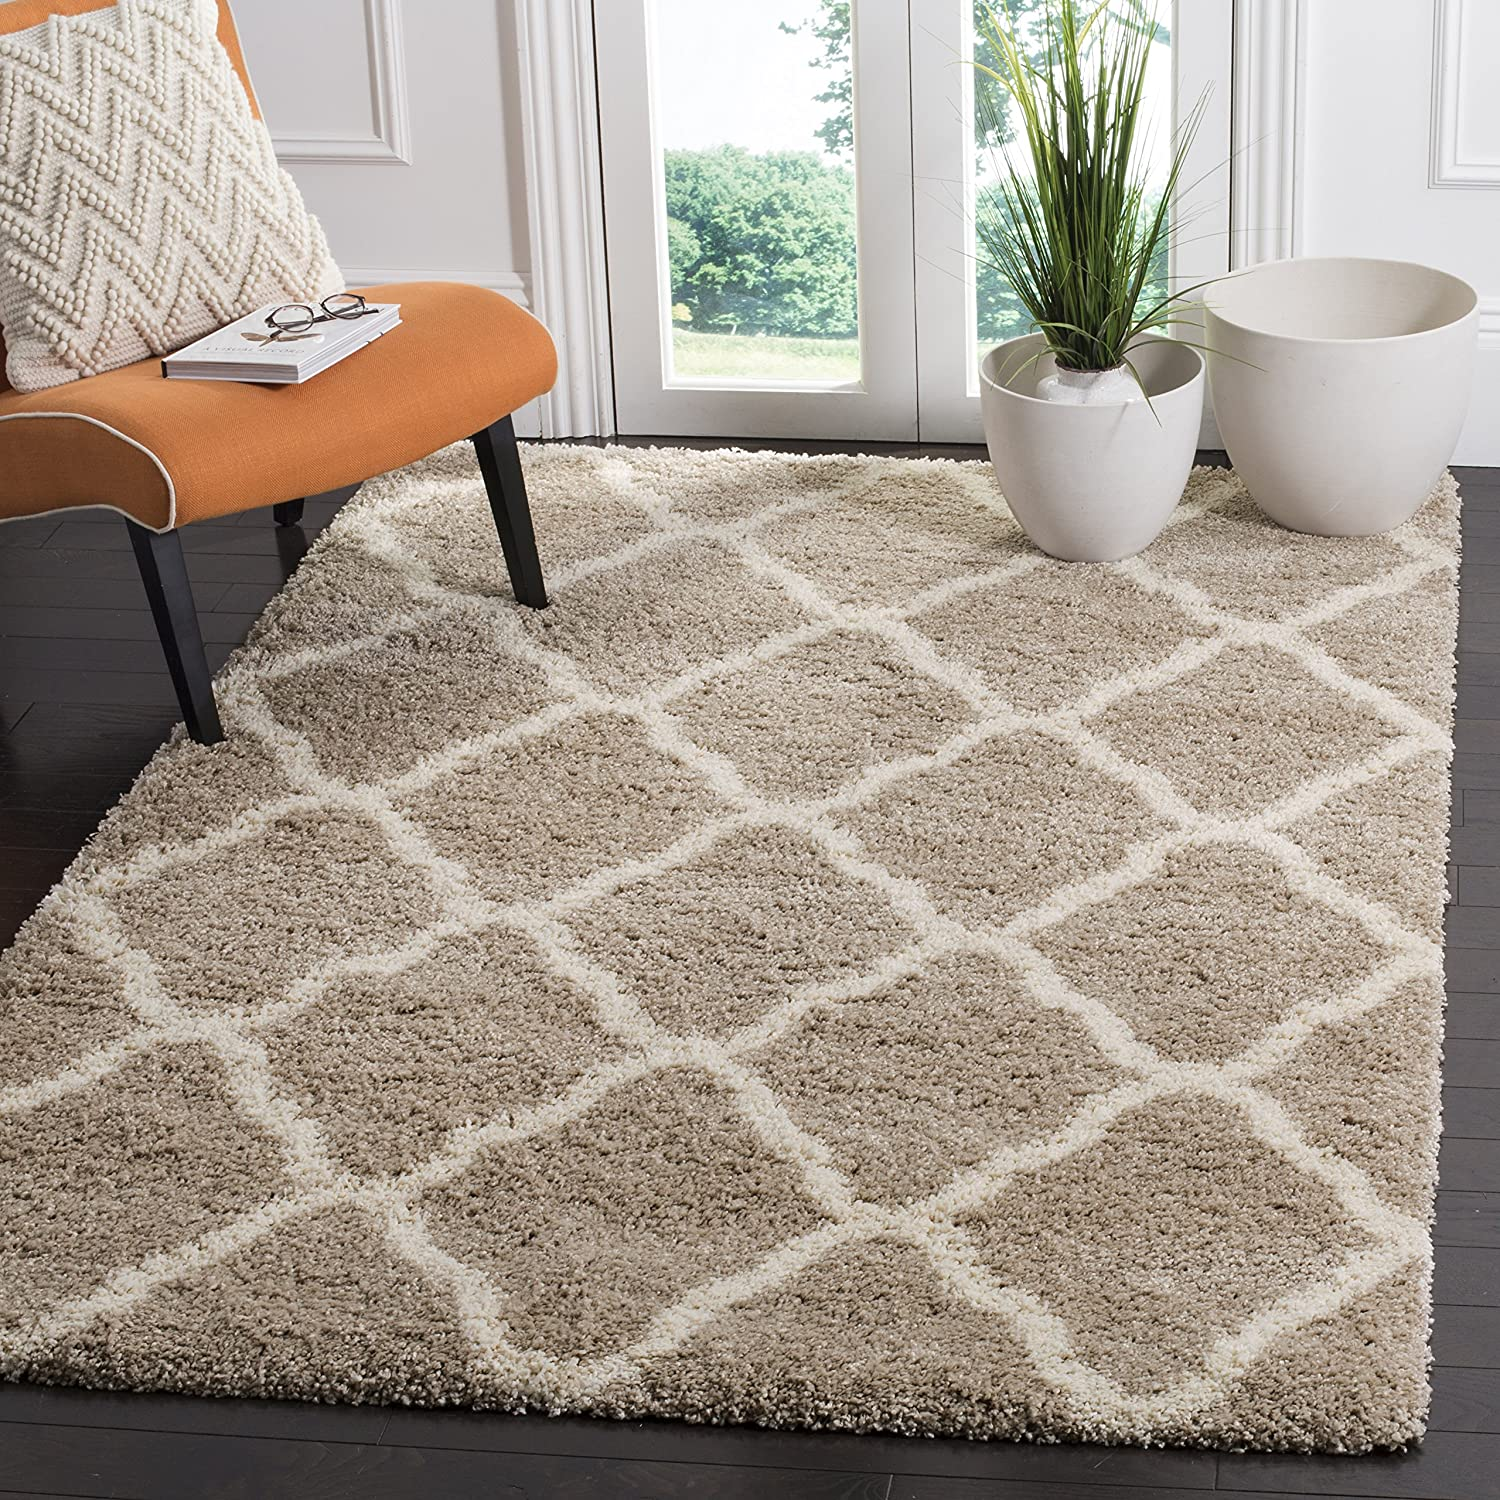 SAFAVIEH Hudson Shag Collection SGH283S Moroccan Trellis Non-Shedding Living Room Bedroom Dining Room Entryway Plush 2-inch Thick Area Rug, 7' x 7' Square, Beige / Ivory